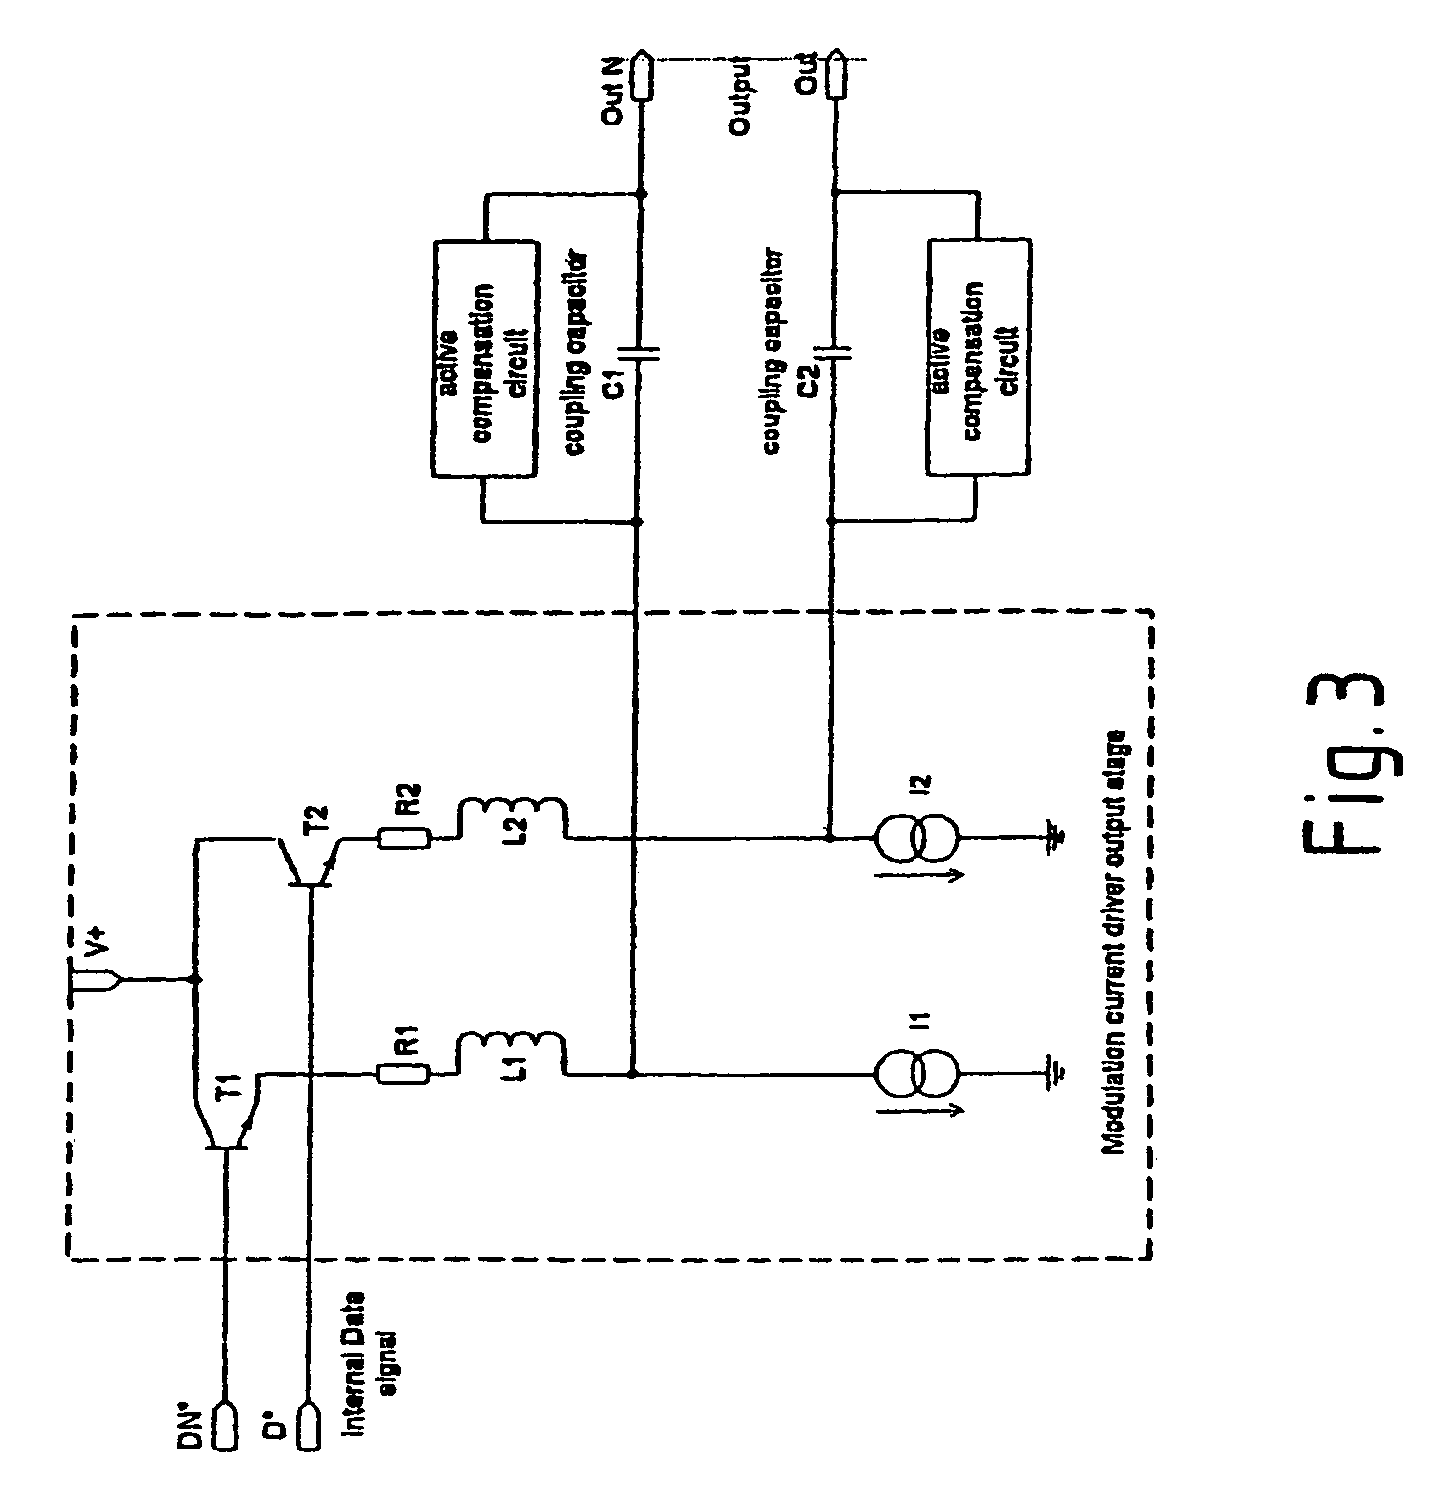 Patent Us7391797 Integrated Circuit For Controlling A Laser Diode Low Pass Filter Diagram Basiccircuit Drawing